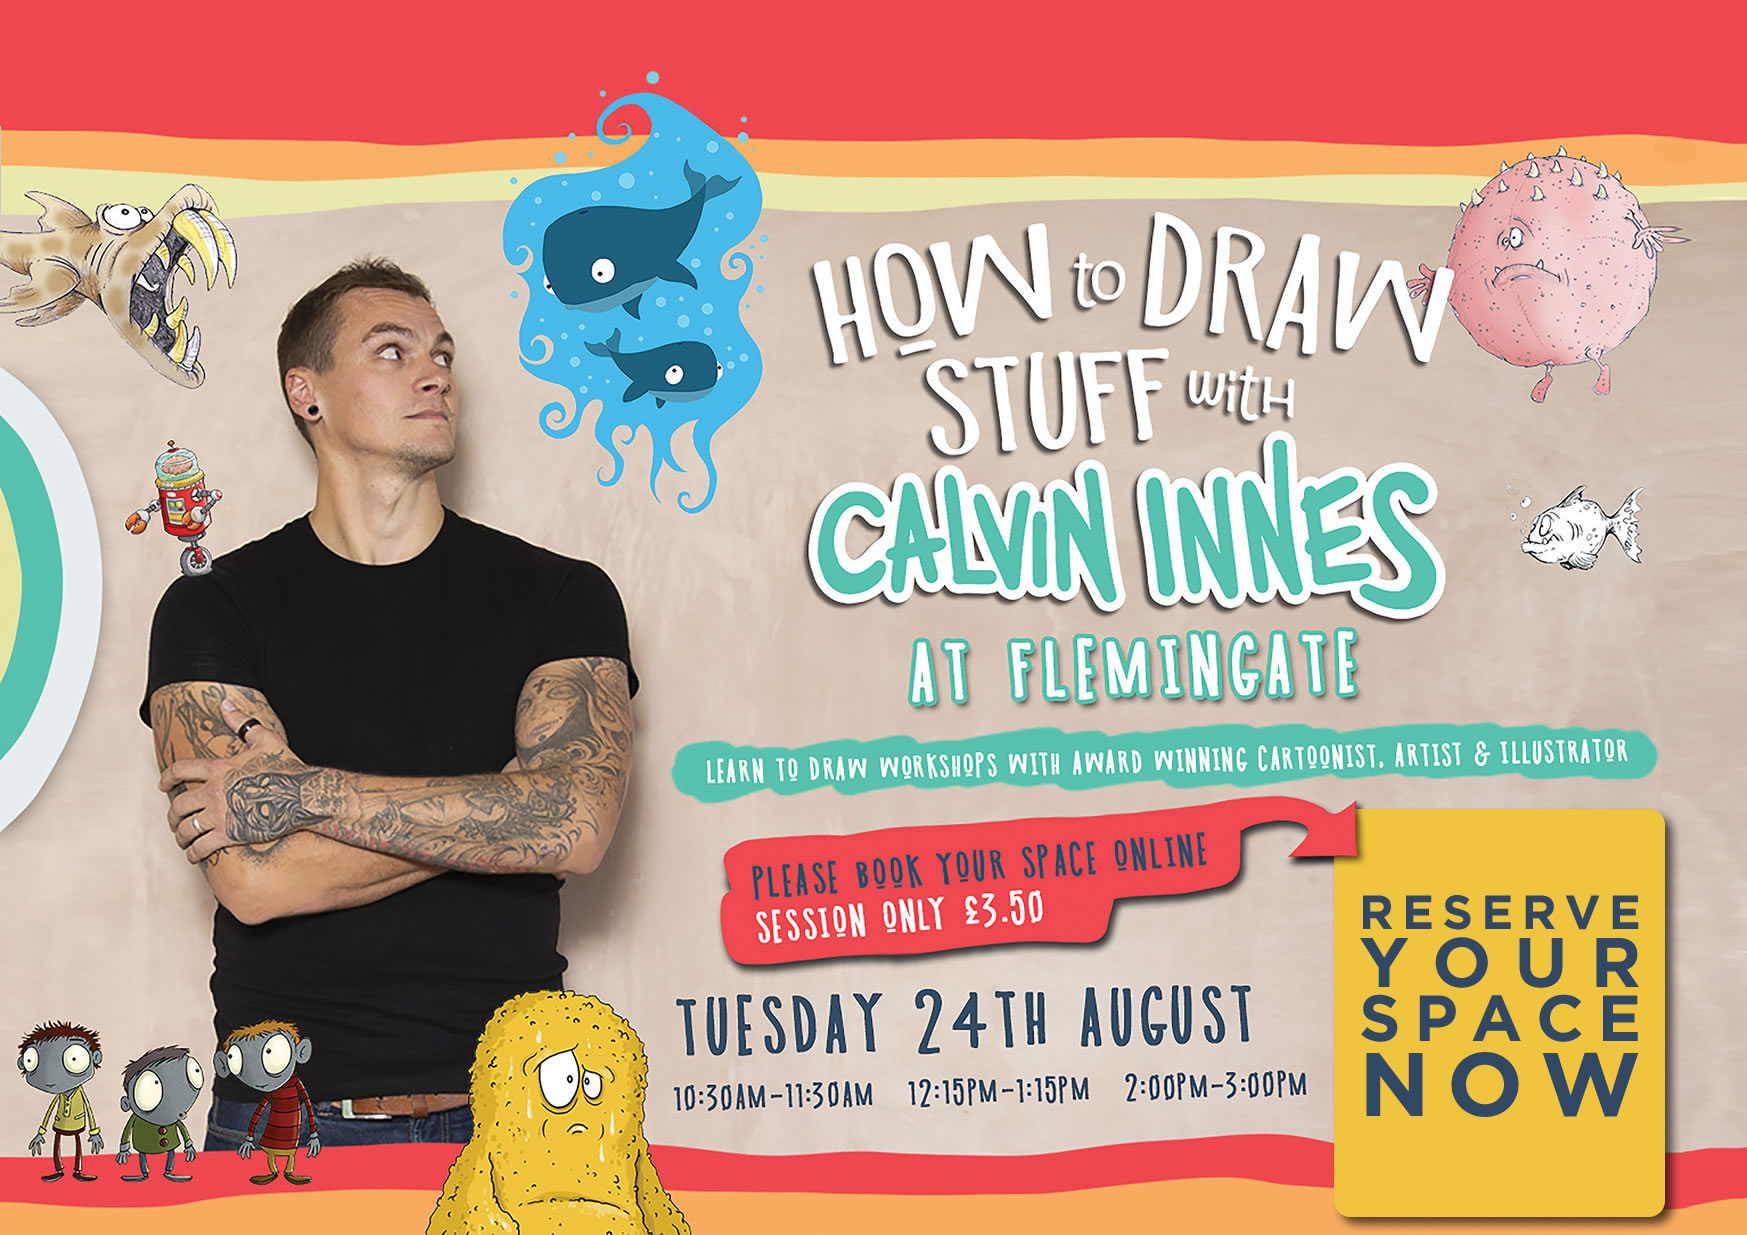 How to draw with Calvin Innes